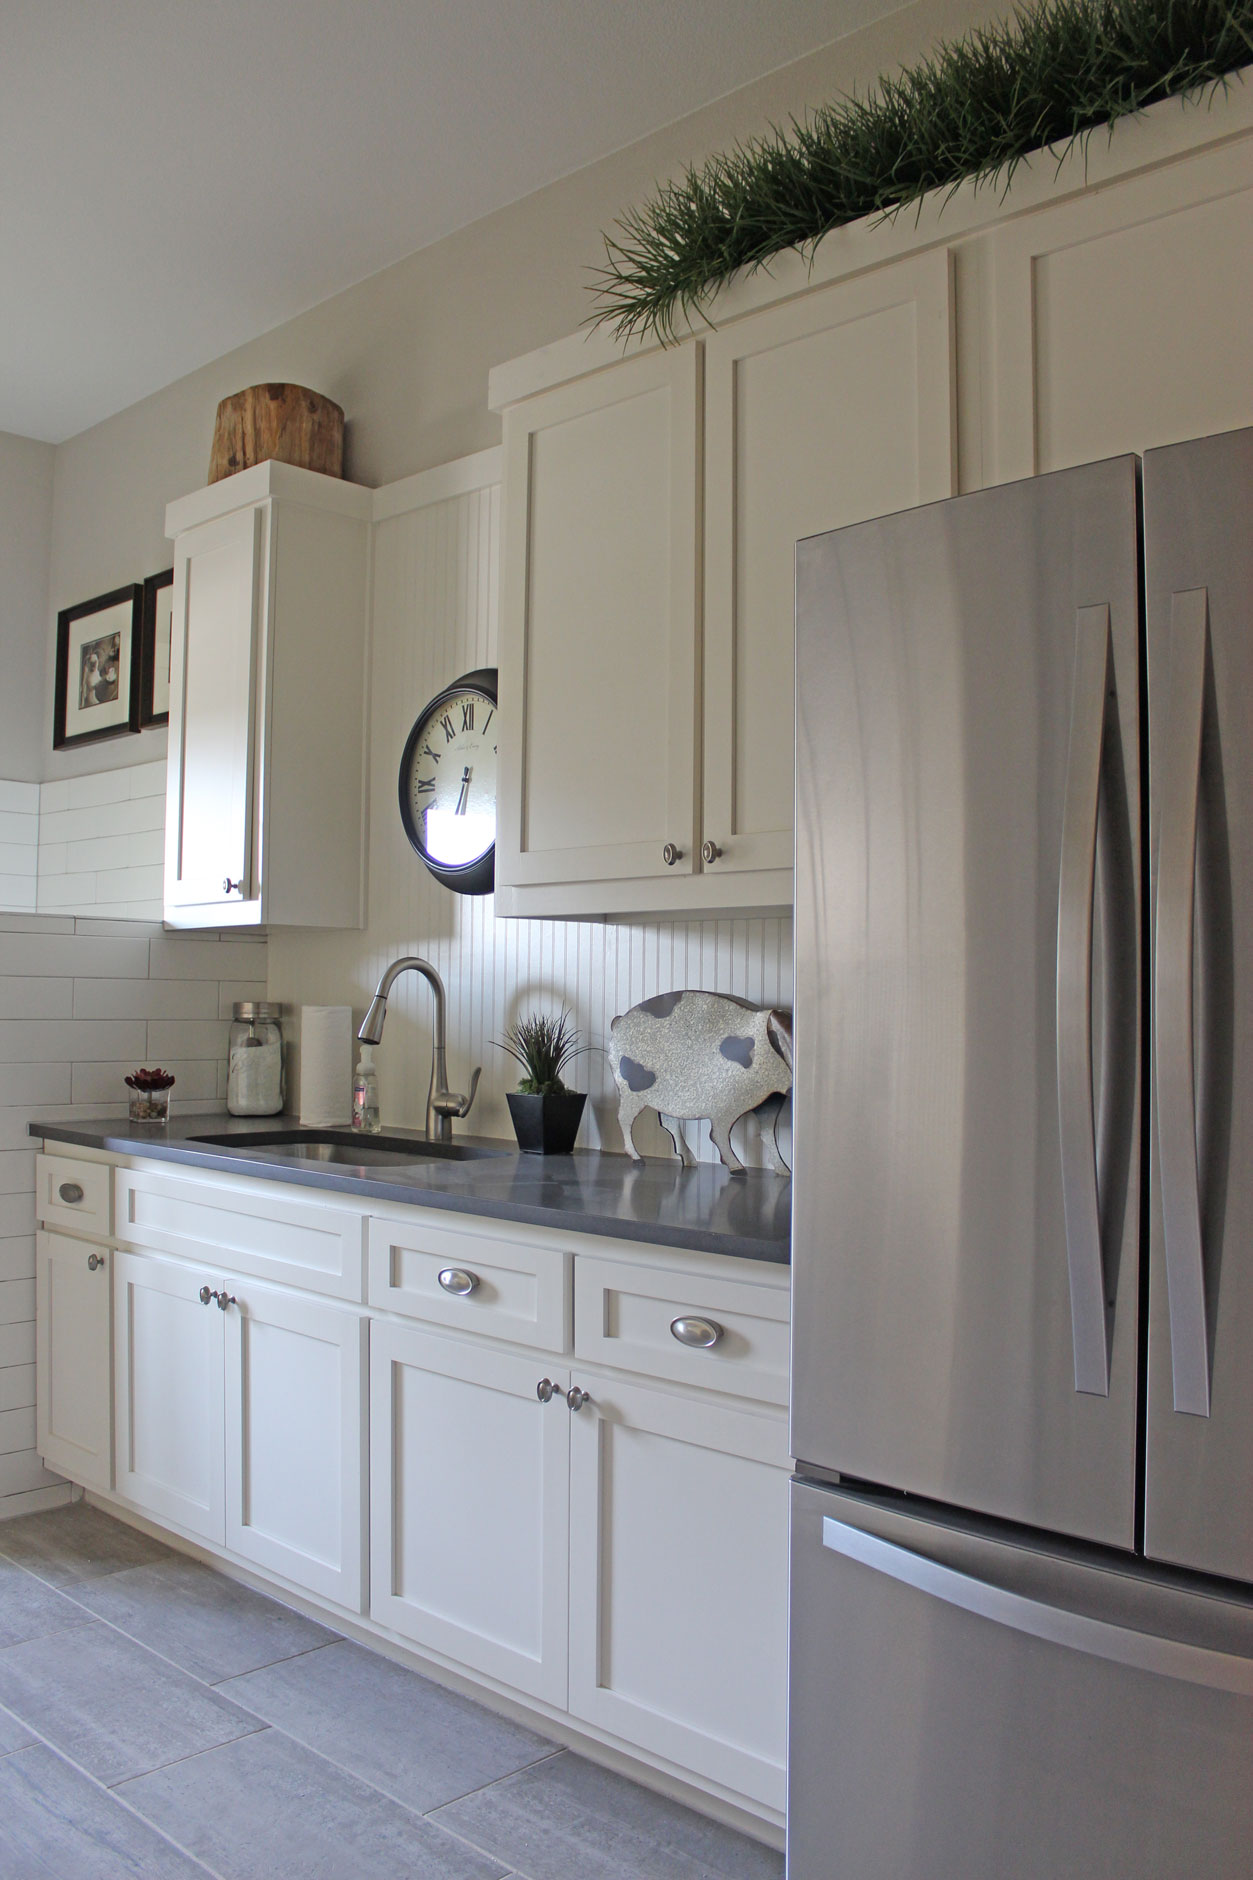 White Beadboard Kitchen Cabinets Laundry Mud Room Burrows Cabinets Central Texas